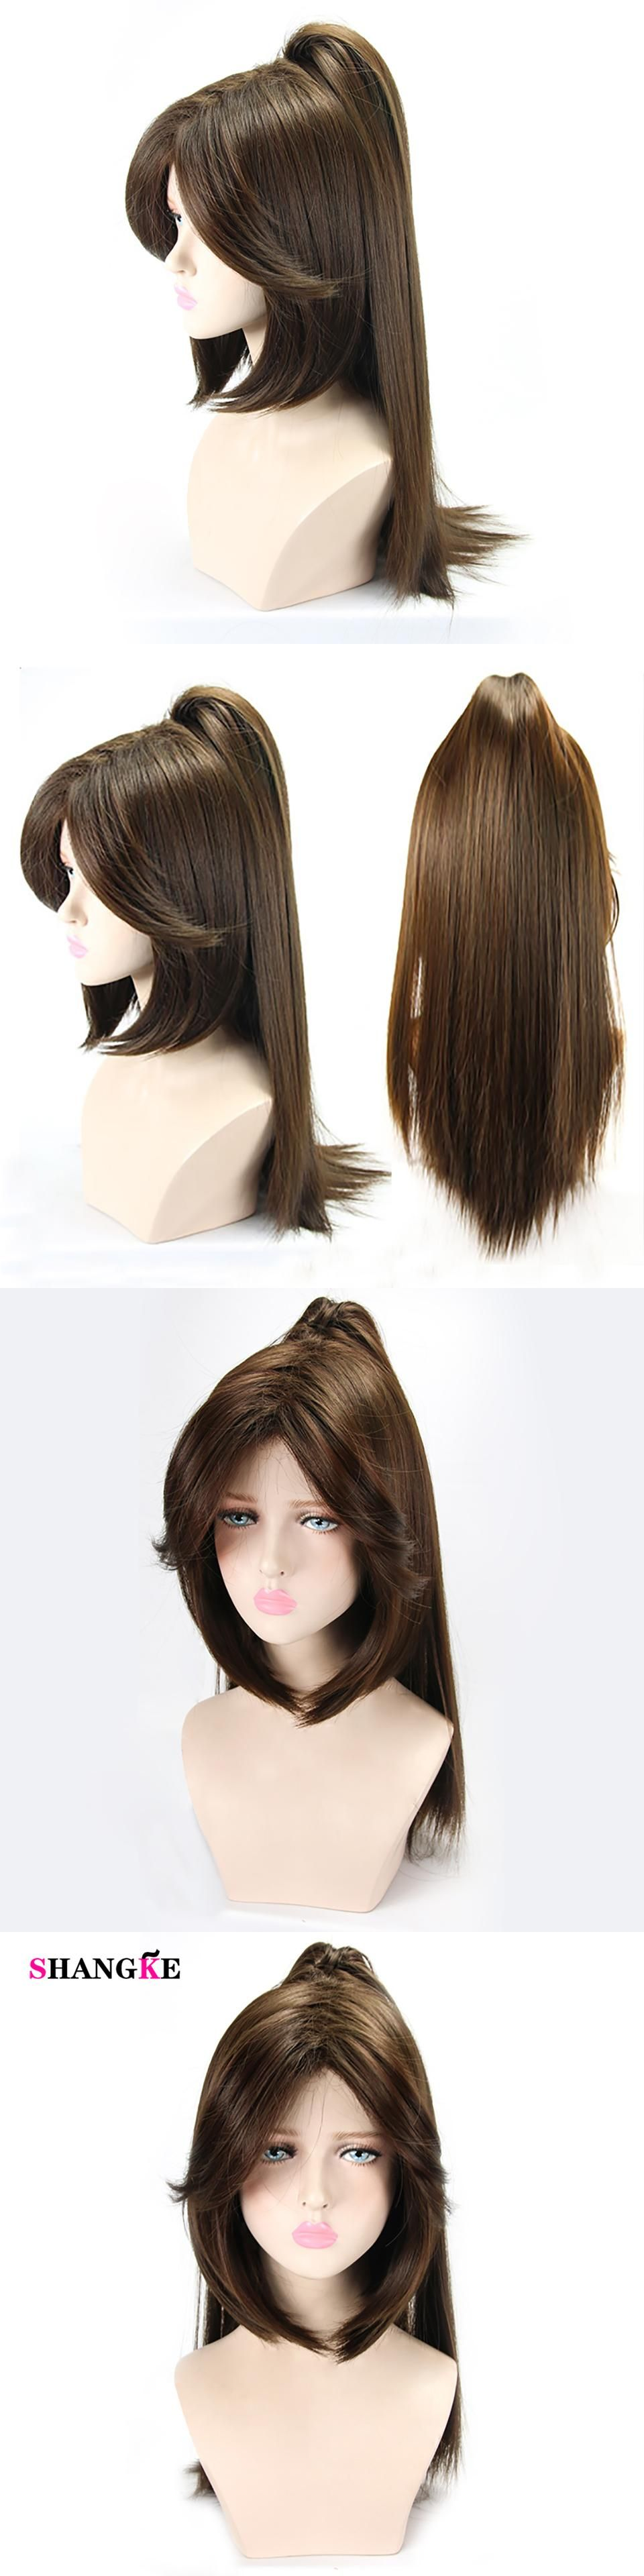 Shangke Dark Brown Wigs Long Straight Hair Ponytail Wig Synthetic Hair Halloween Costumes Party Heat Resist Long Straight Hair Straight Hairstyles Ponytail Wig